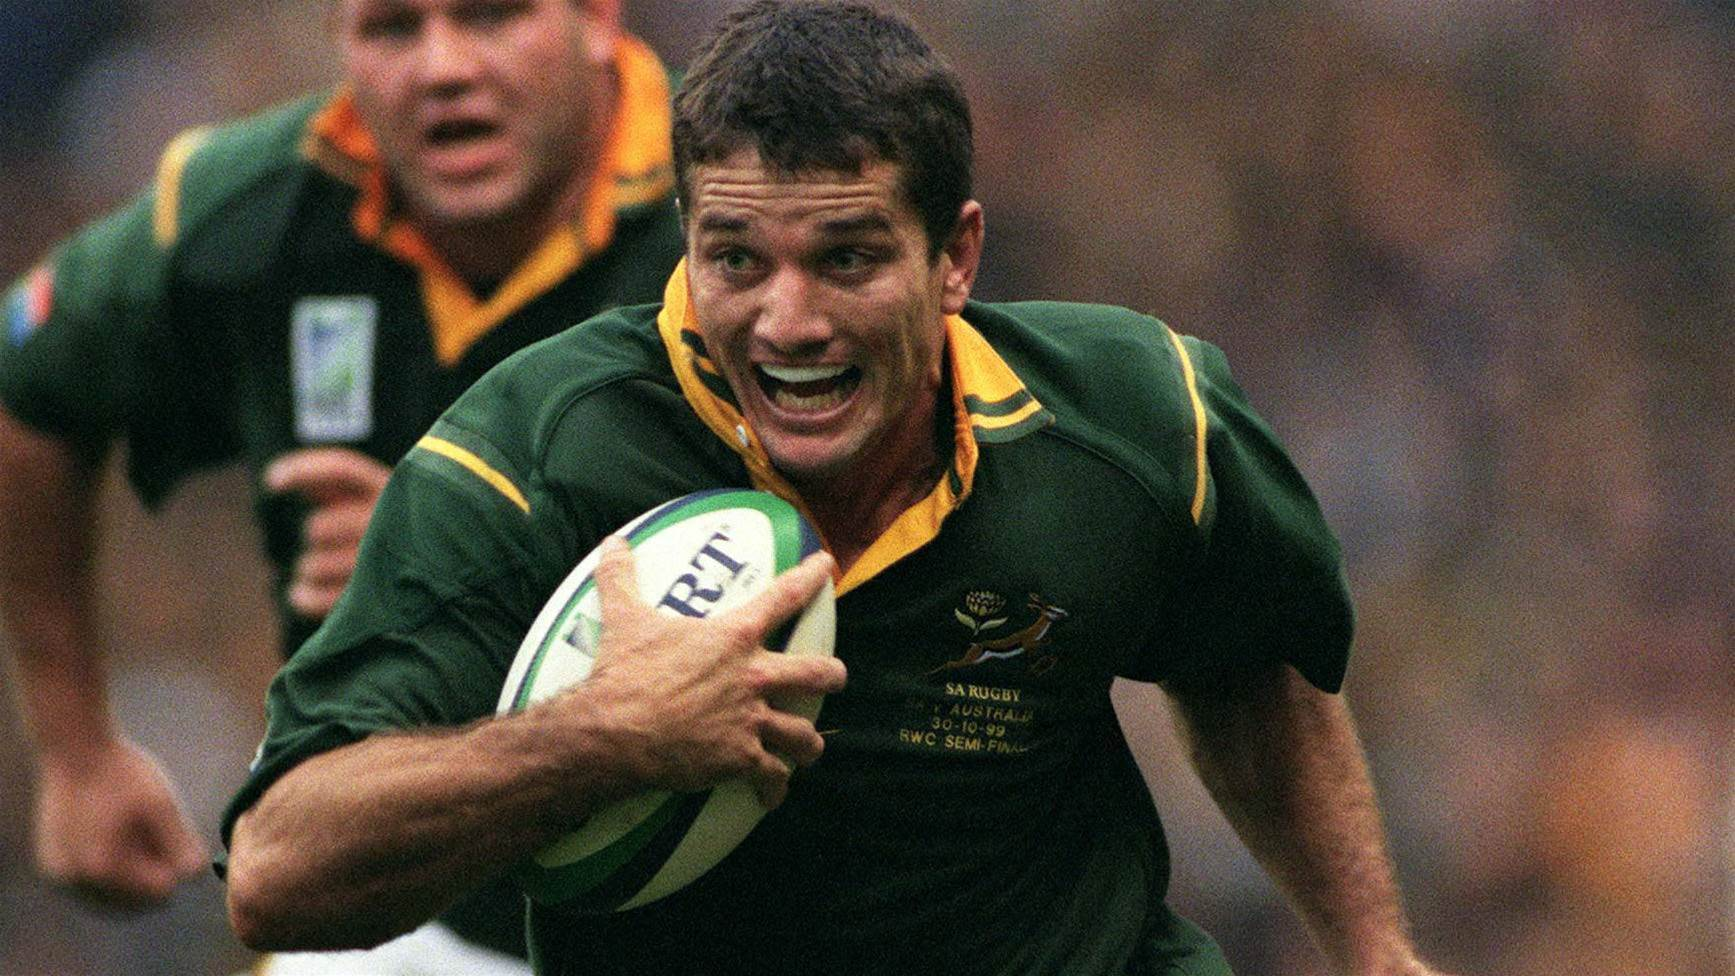 Former Springbok fighting for life